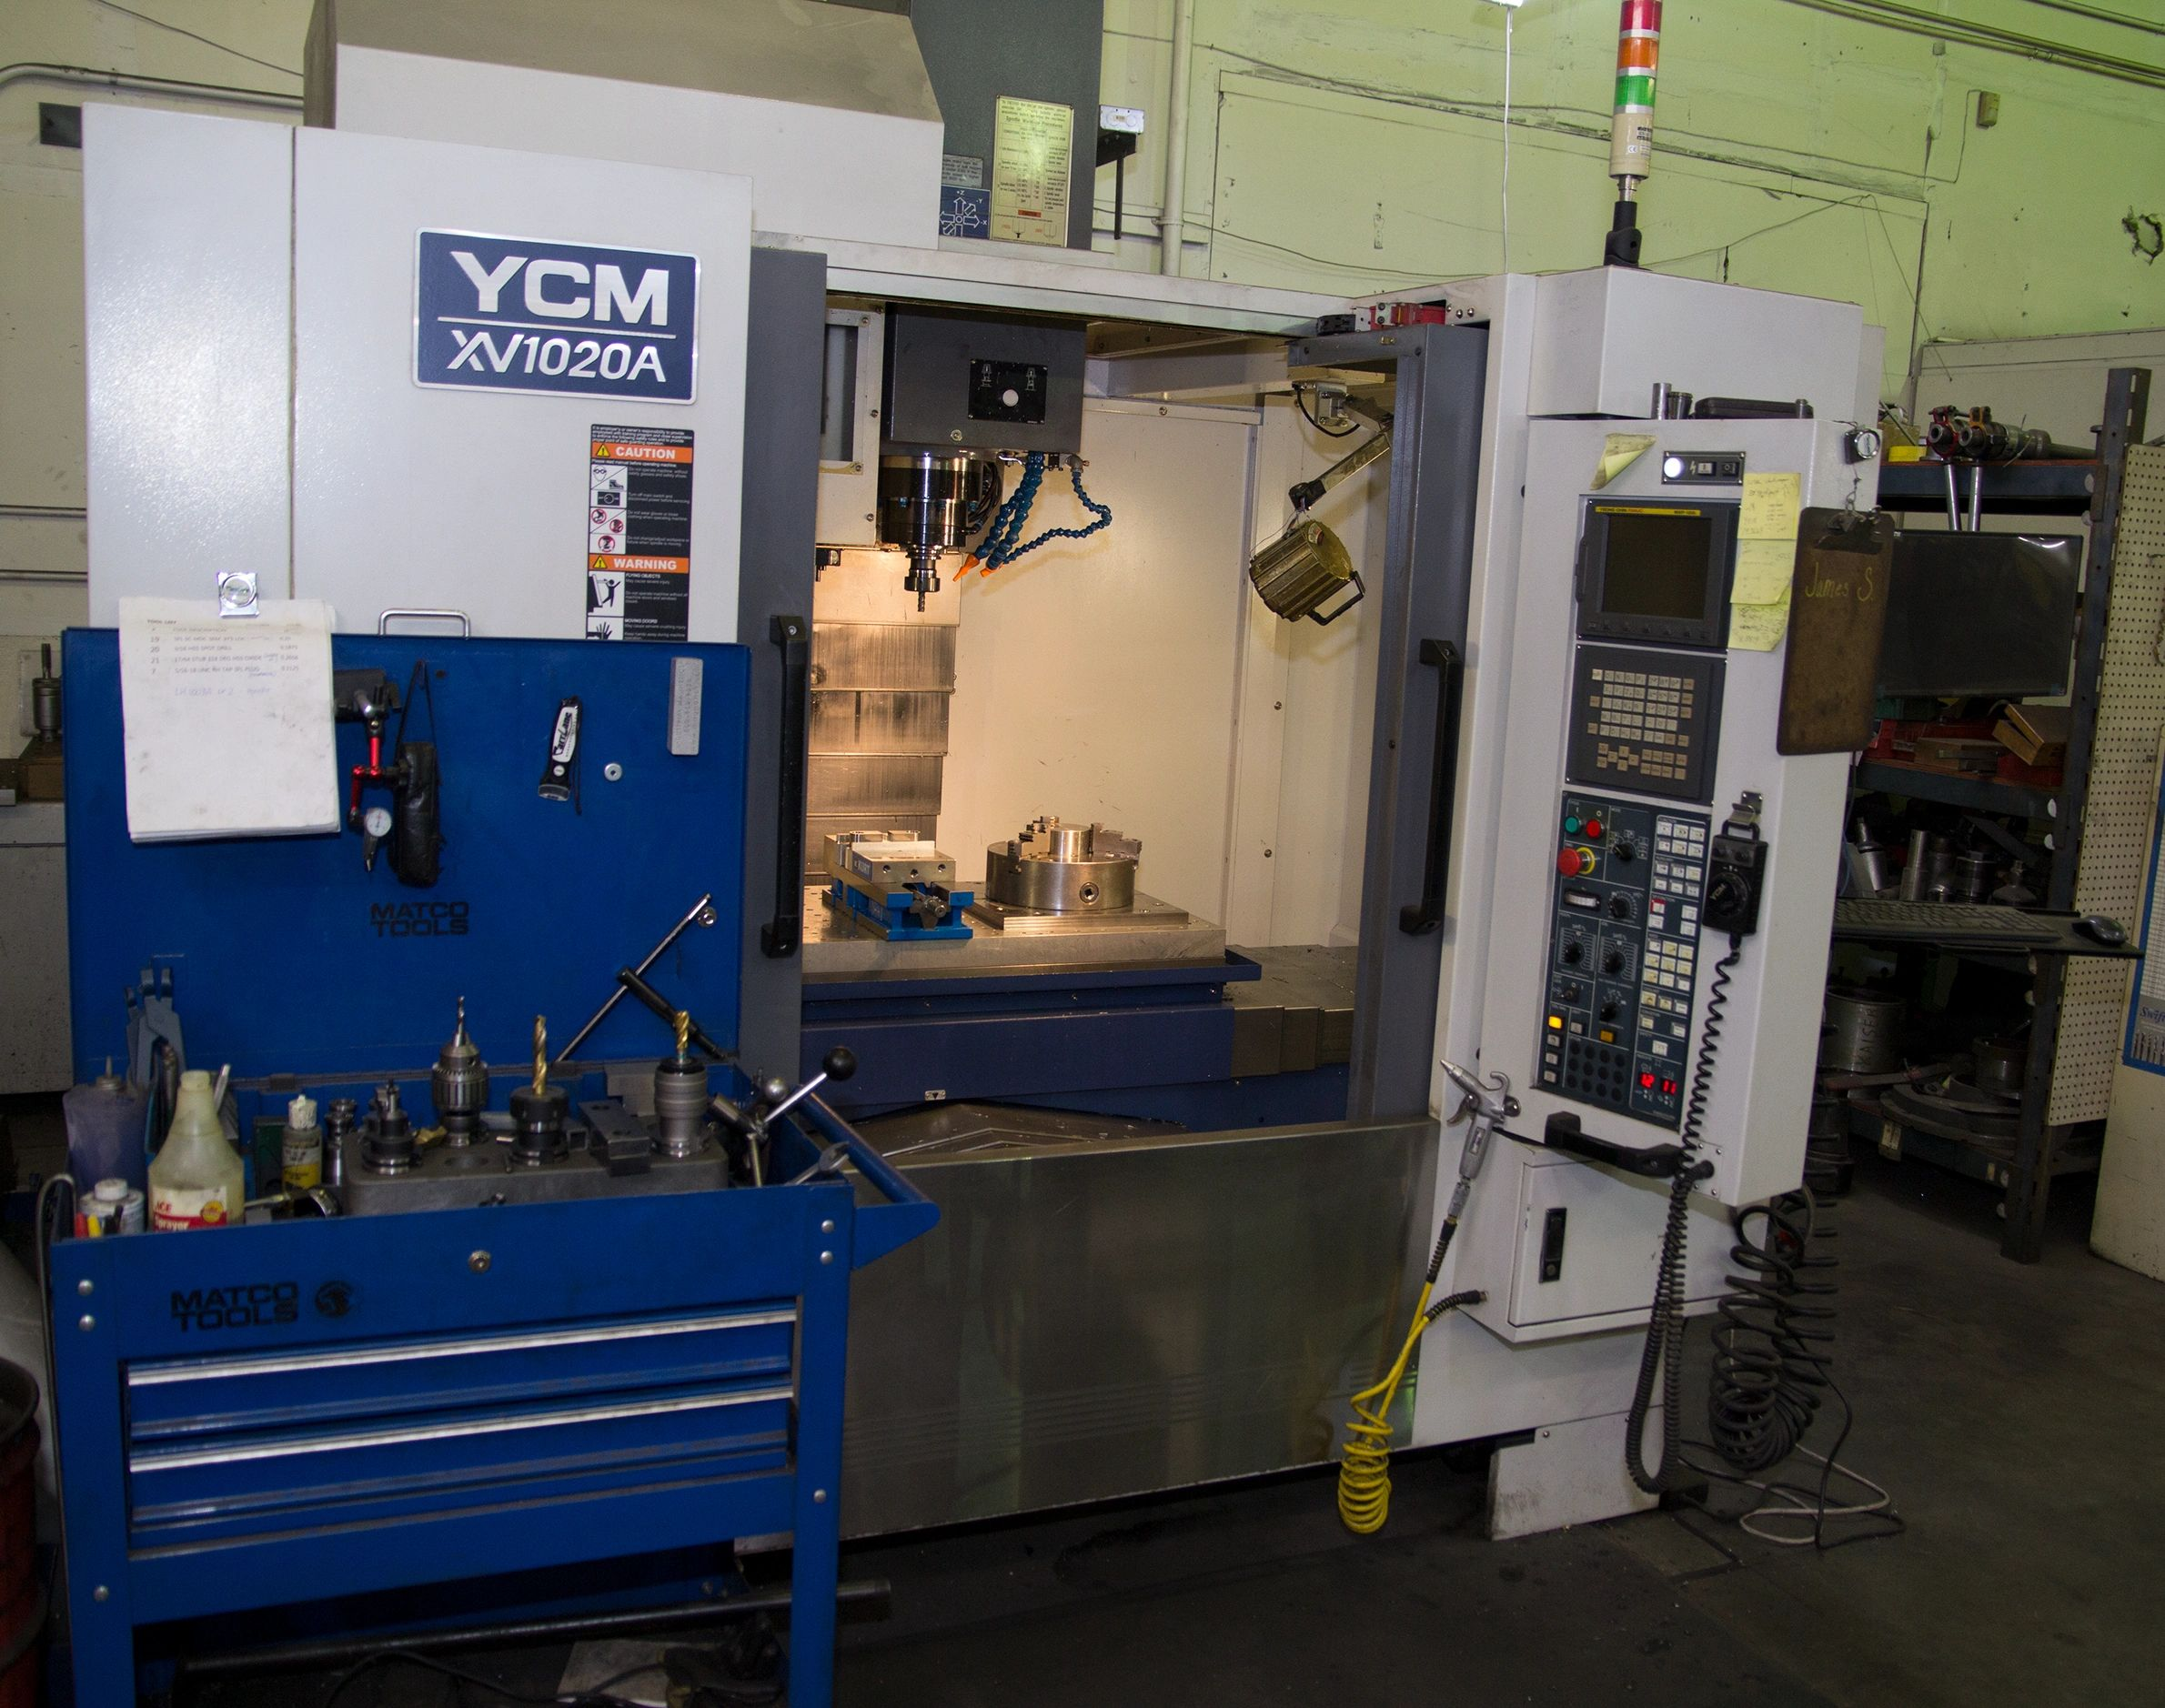 "{""blocks"":[{""key"":""883na"",""text"":""Our CNC machine.  It is a YCM XV1020A 3-axis machine with a maximum workpiece size of 40\""x20\""x20\"" and has a weight maximum of 1,100lbs."",""type"":""unstyled"",""depth"":0,""inlineStyleRanges"":[{""offset"":0,""length"":135,""style"":""BOLD""}],""entityRanges"":[],""data"":{}}],""entityMap"":{}}"